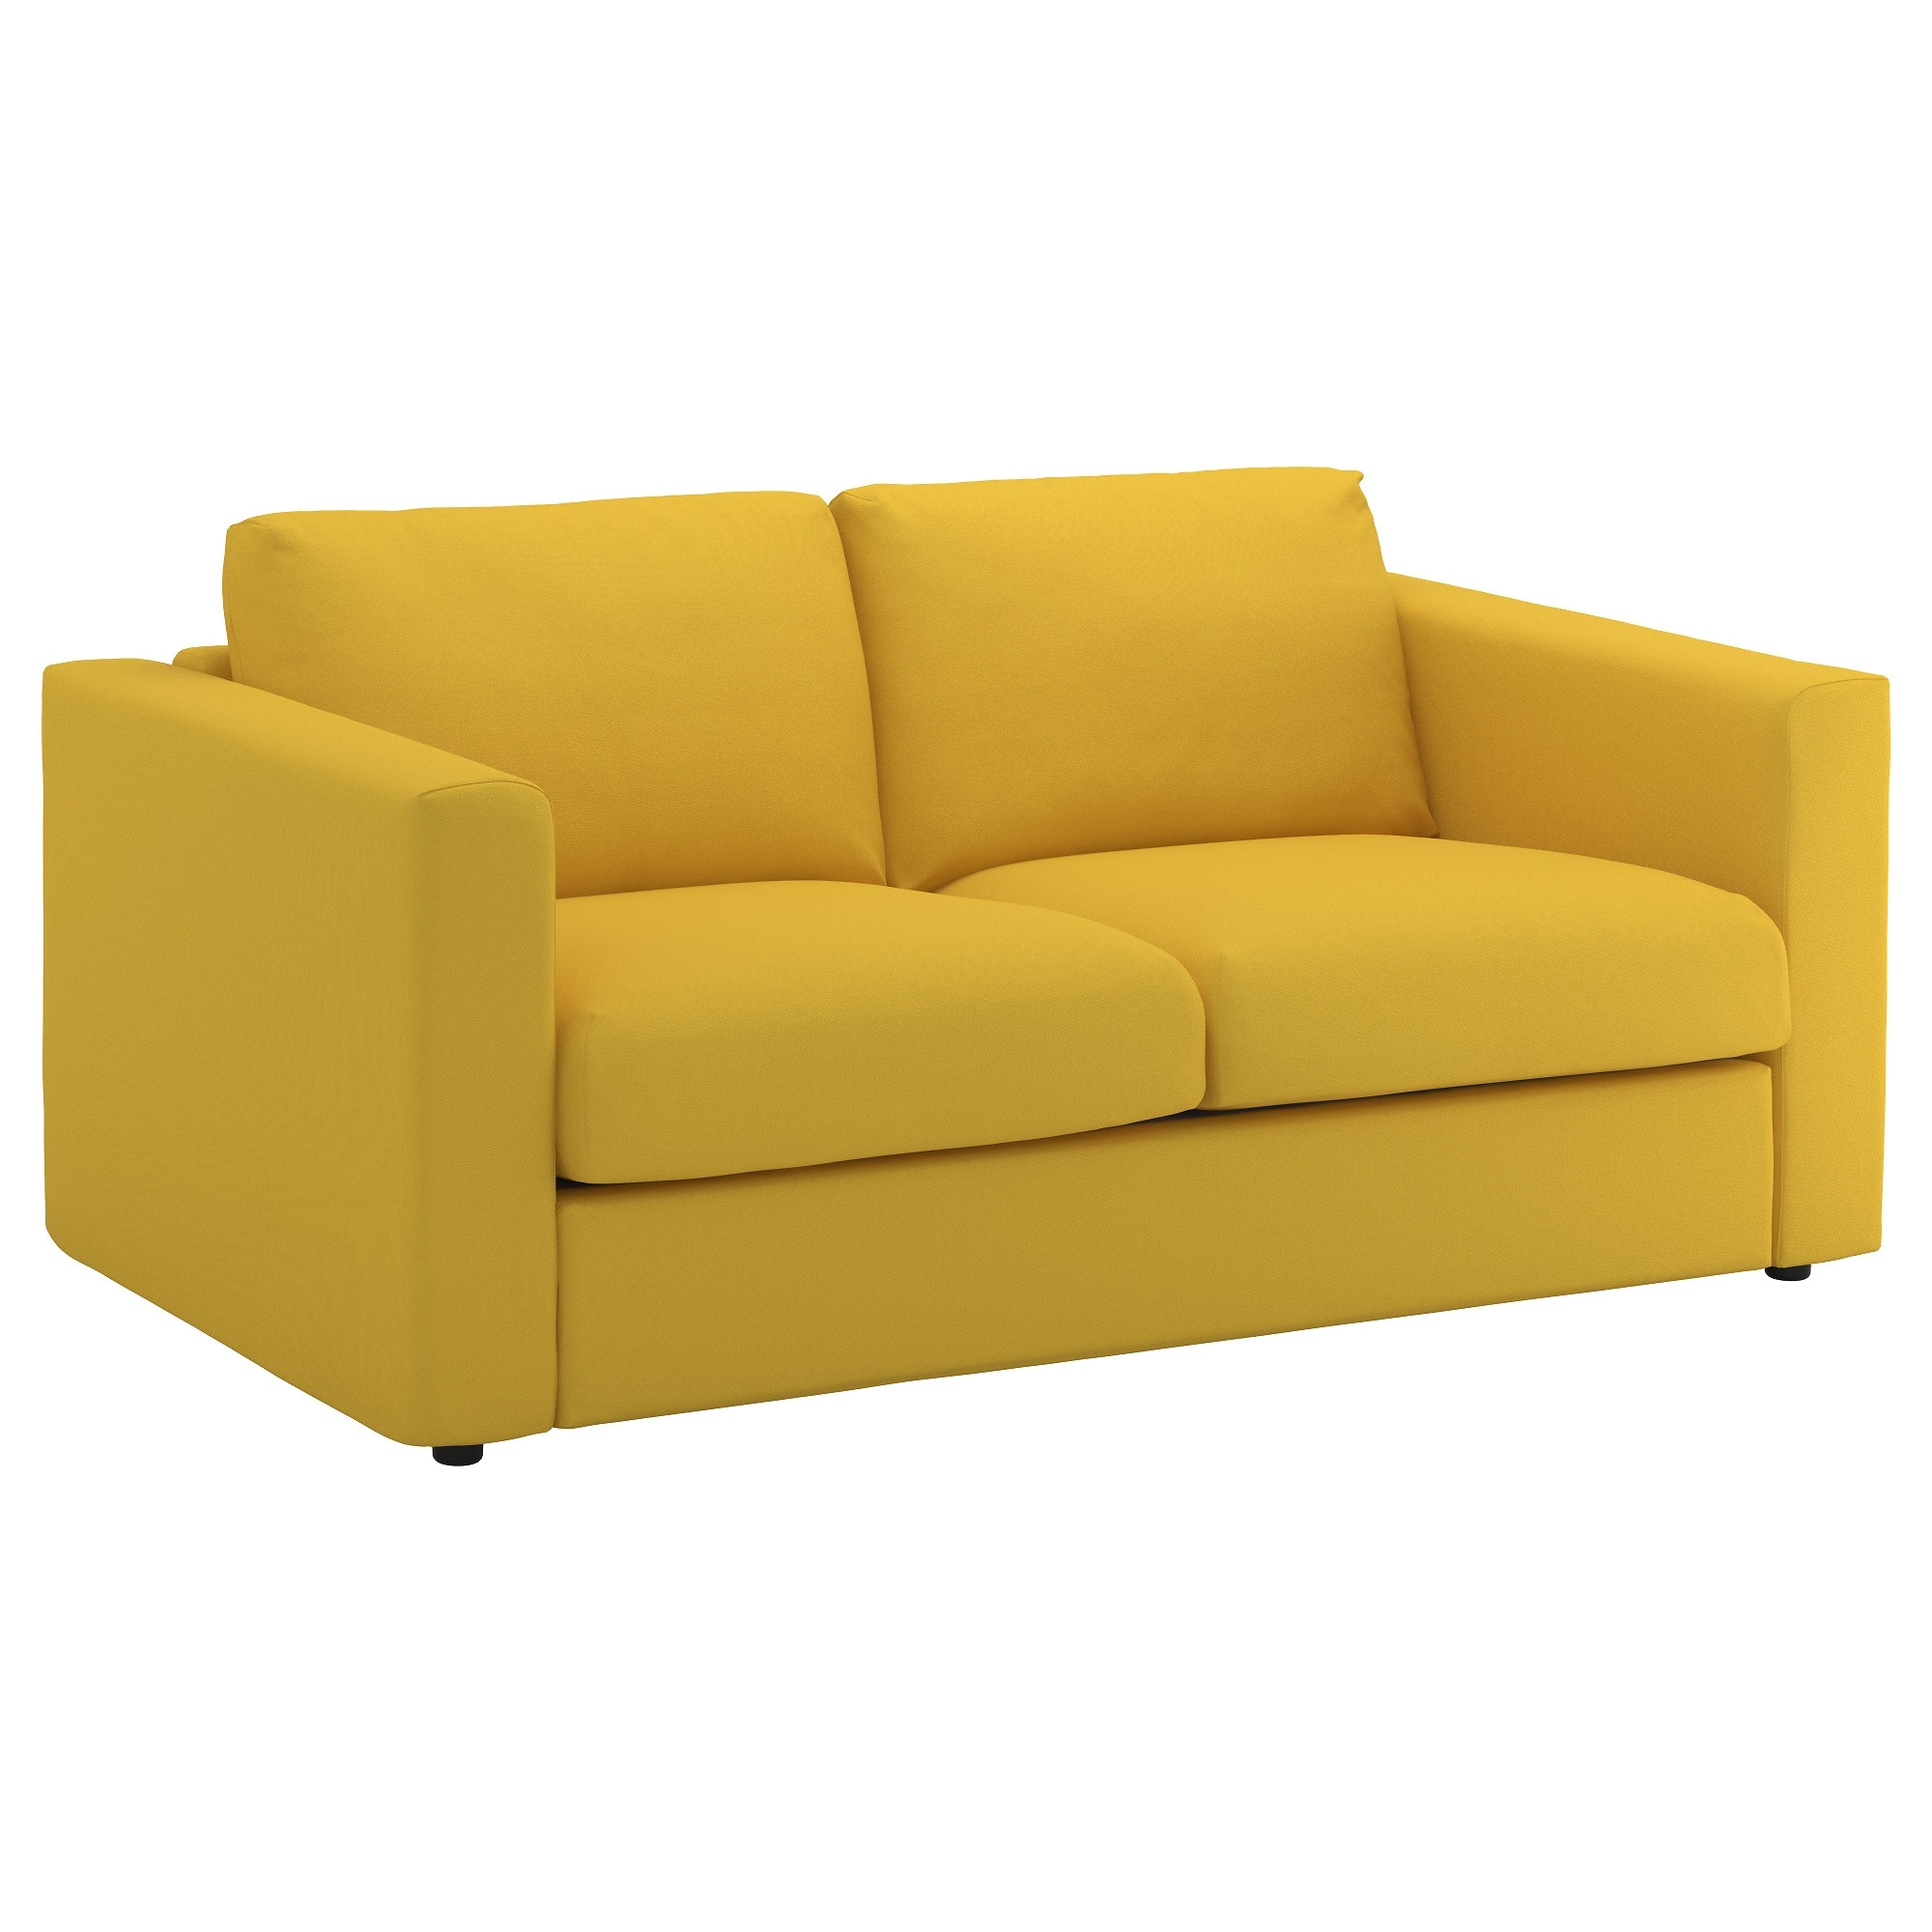 Vimle 2 Seat Sofa Gräsbo Golden Yellow – Ikea Inside Favorite Ikea Two Seater Sofas (View 13 of 15)